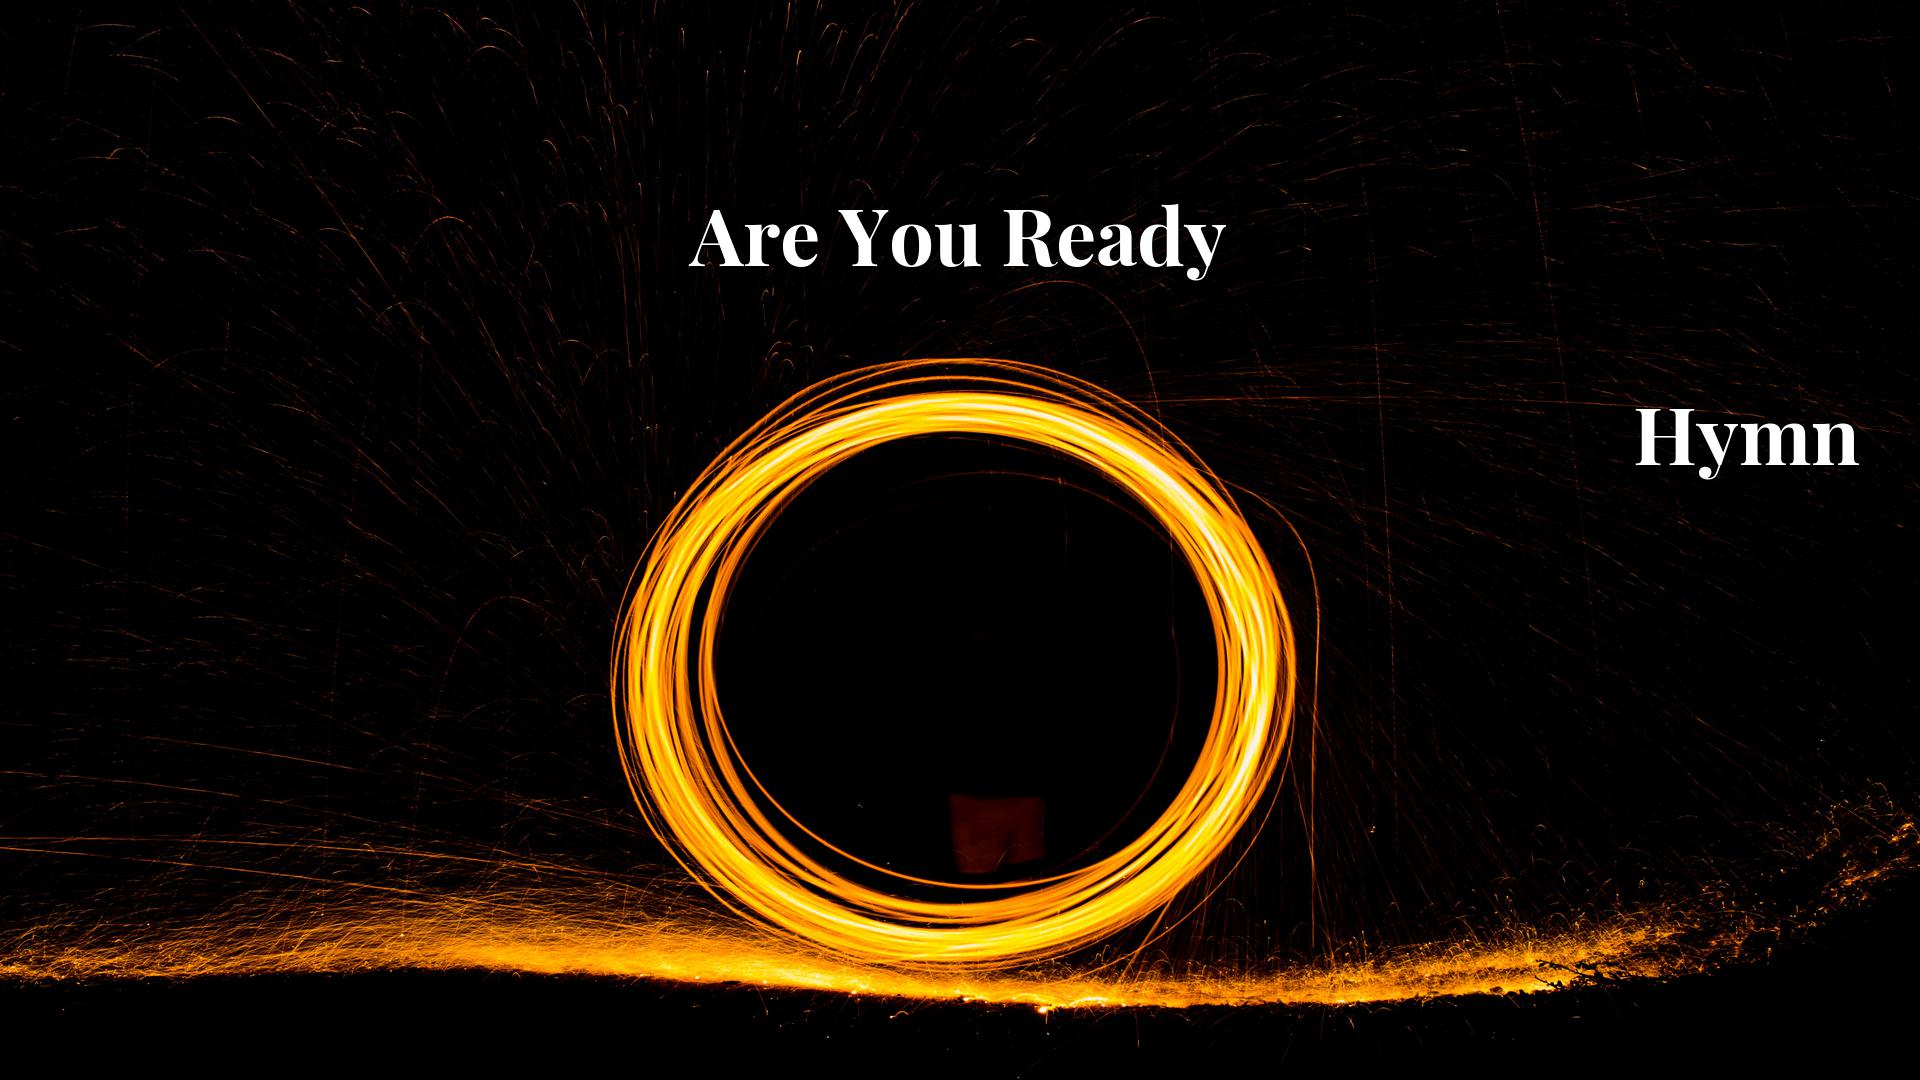 Are You Ready - Hymn